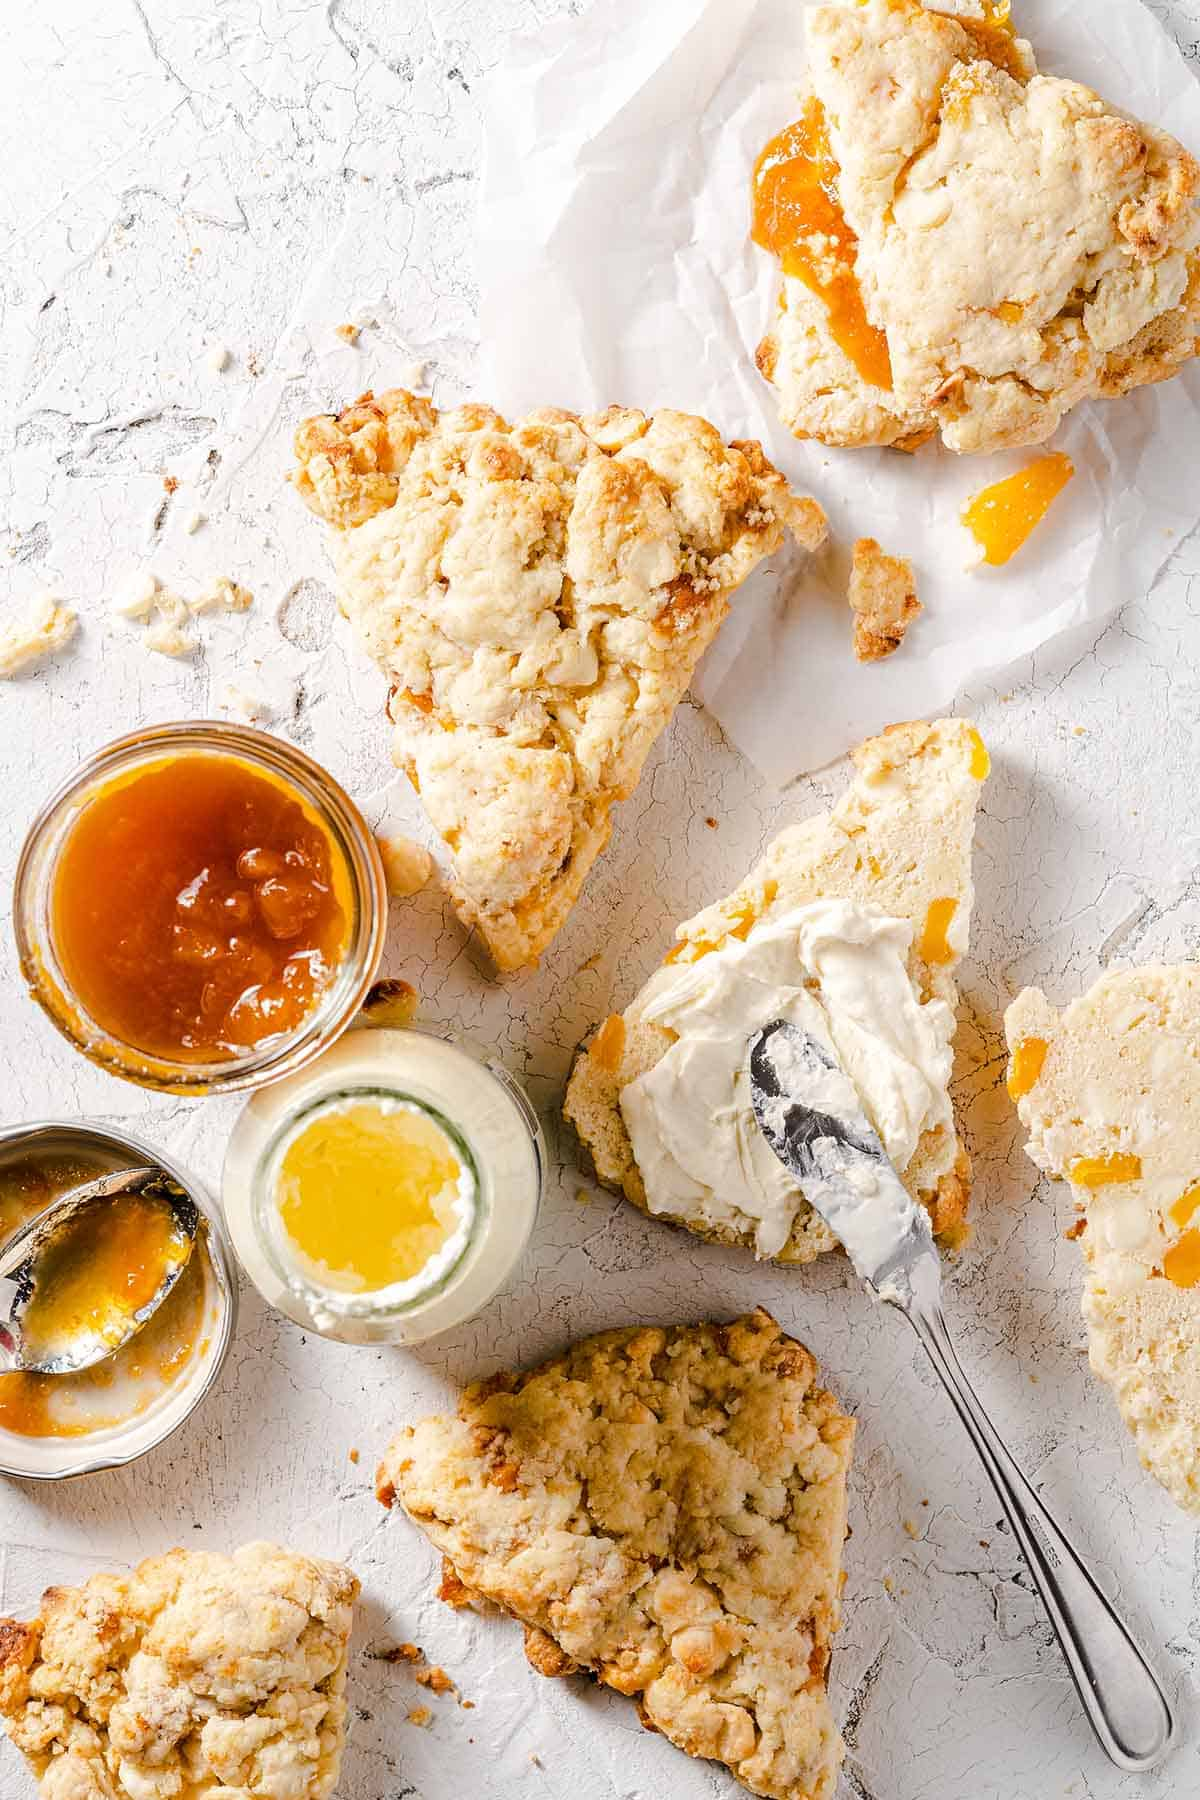 mango white chocolate scones with cream and jam being spread on top